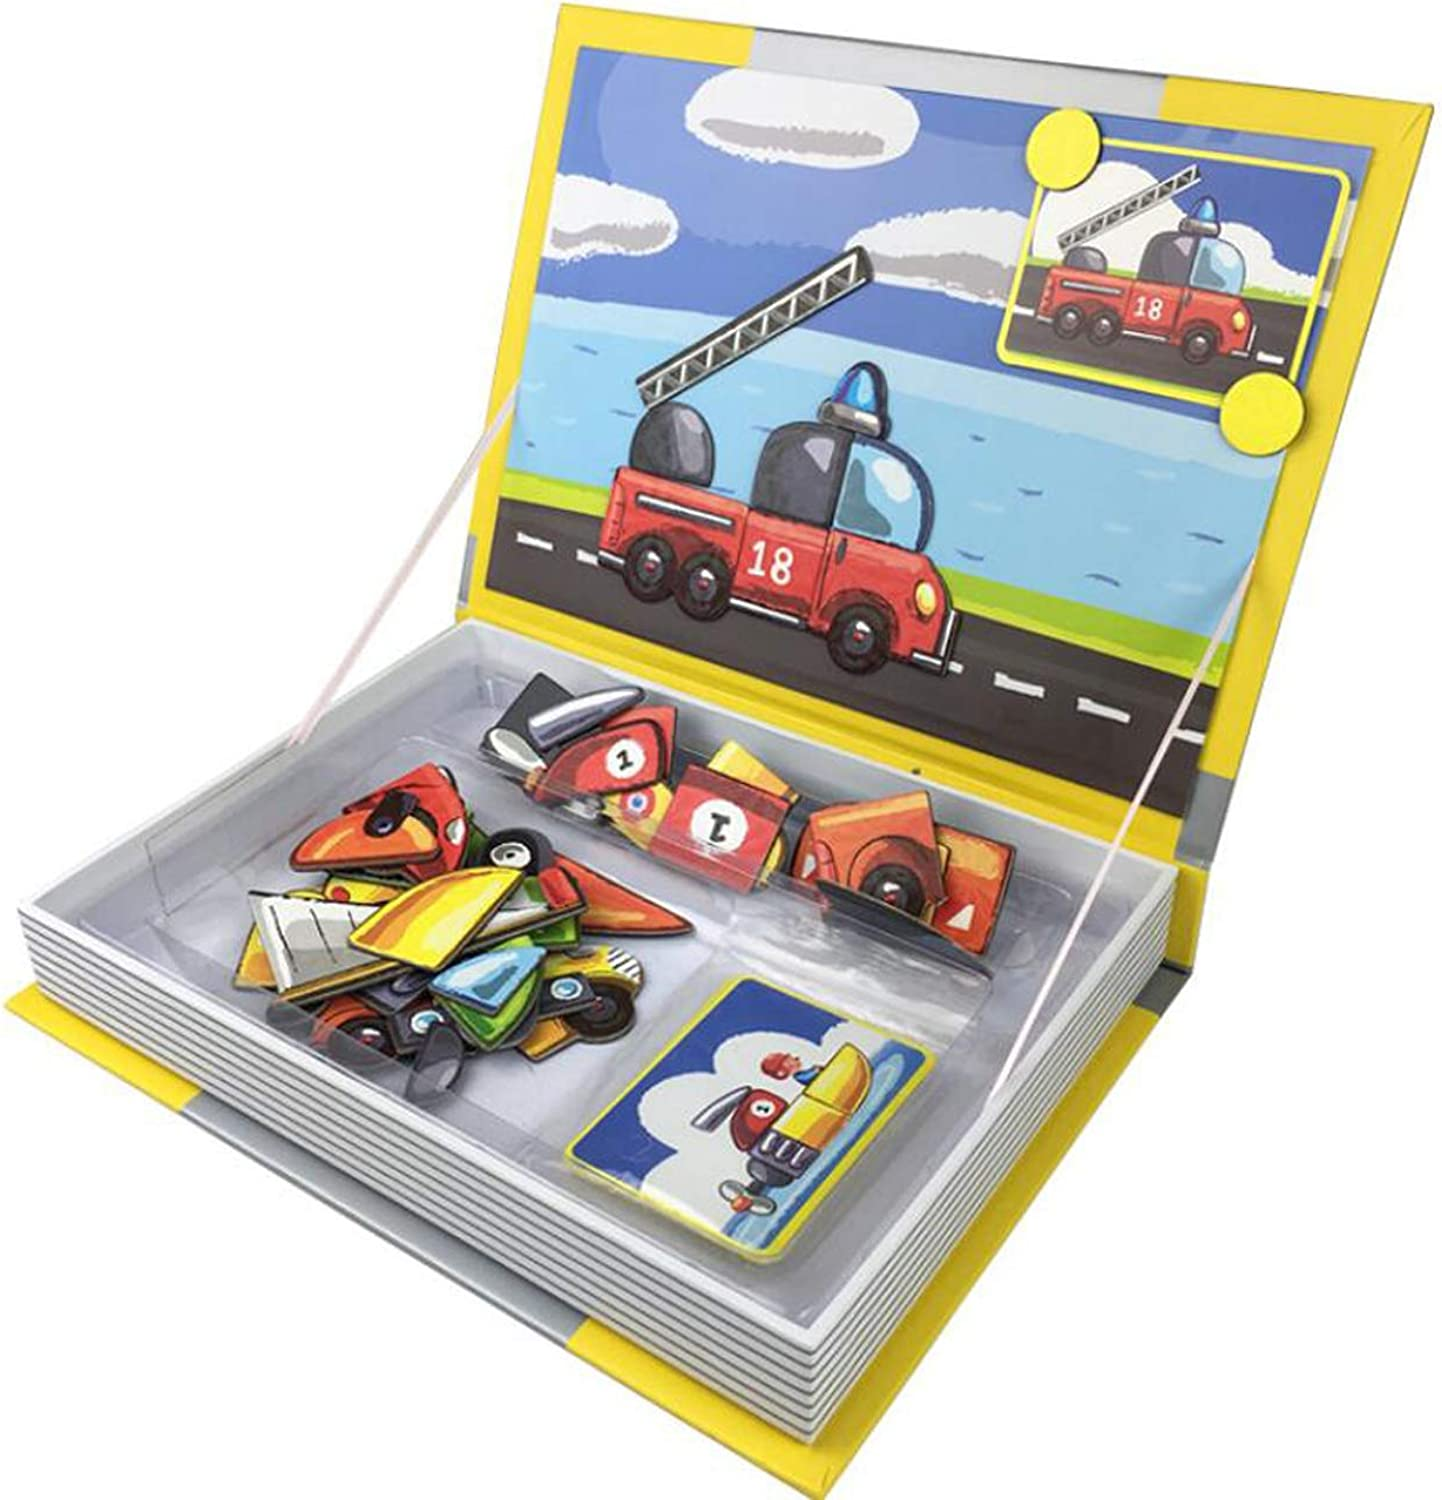 Baby Magnetic Jigsaw Puzzles Educational Wooden Toy for Kids Magnetic Drawing Board,Transportation